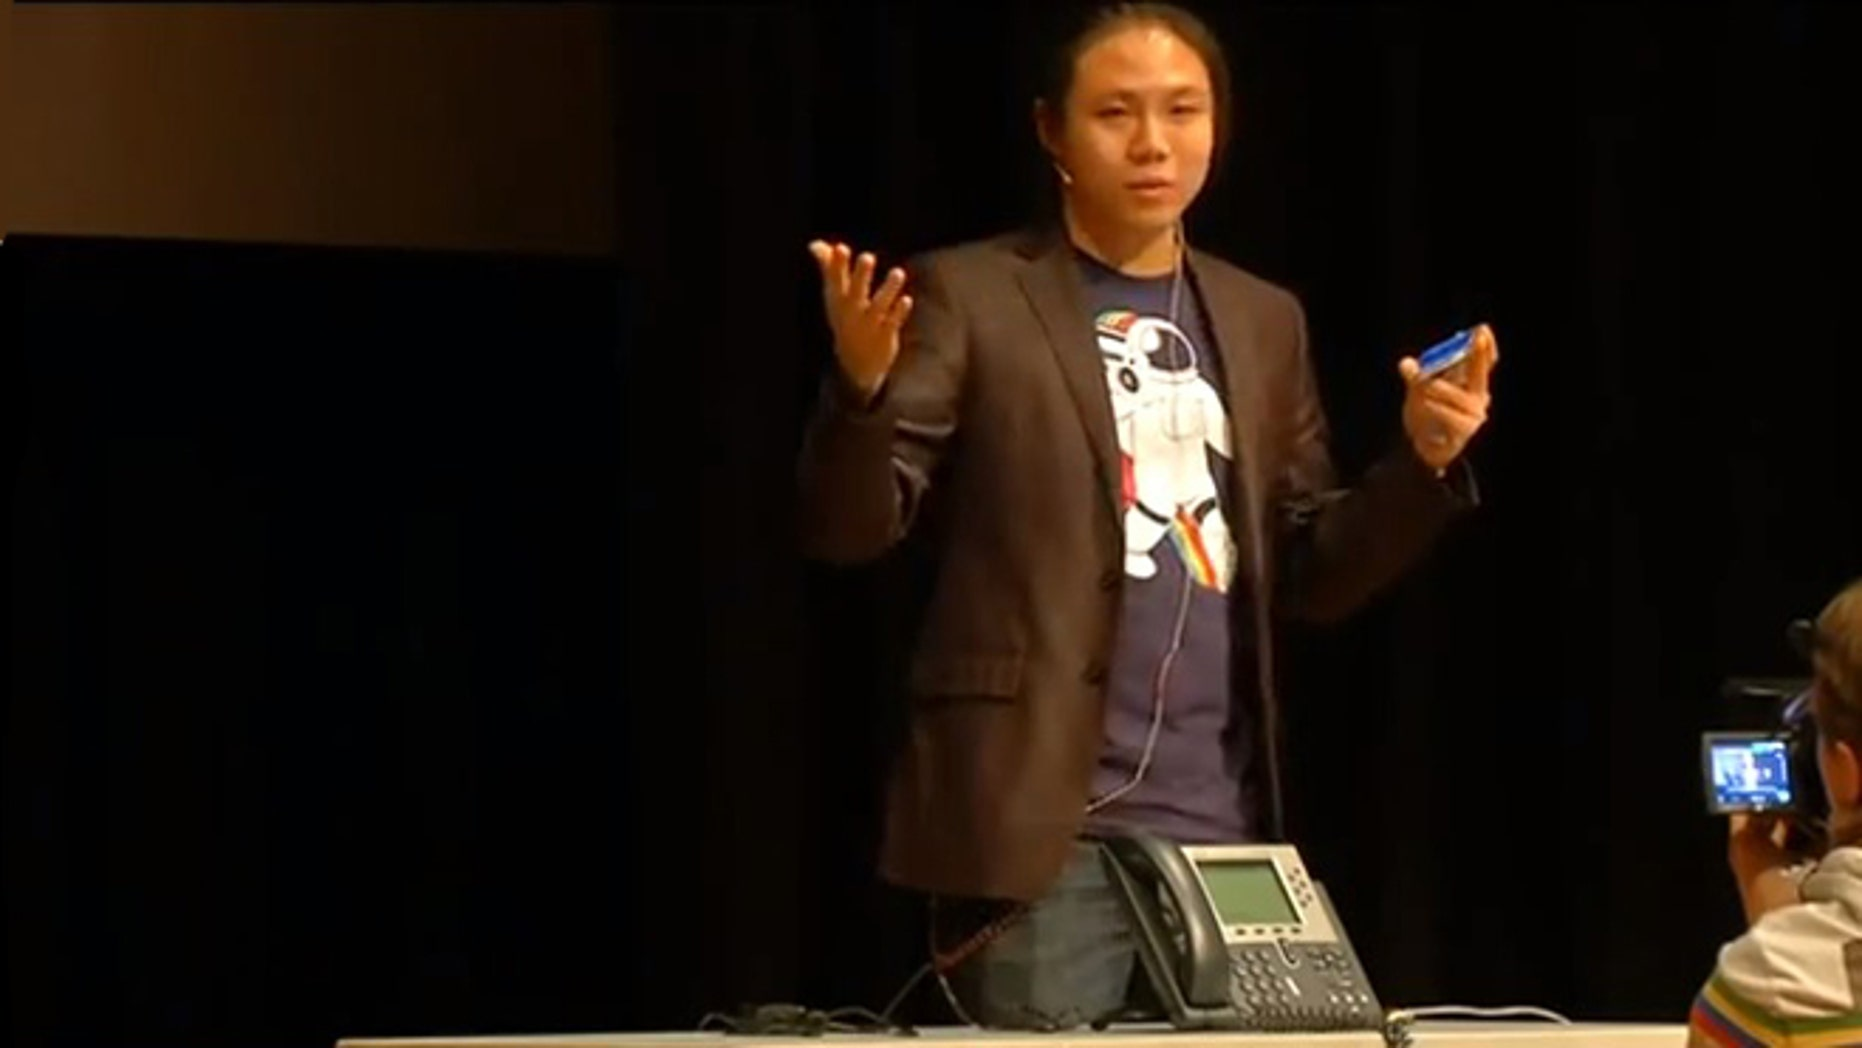 Columbia University graduate student Ang Cui demonstrates a serious vulnerabilities in Cisco VoIP phone technology.